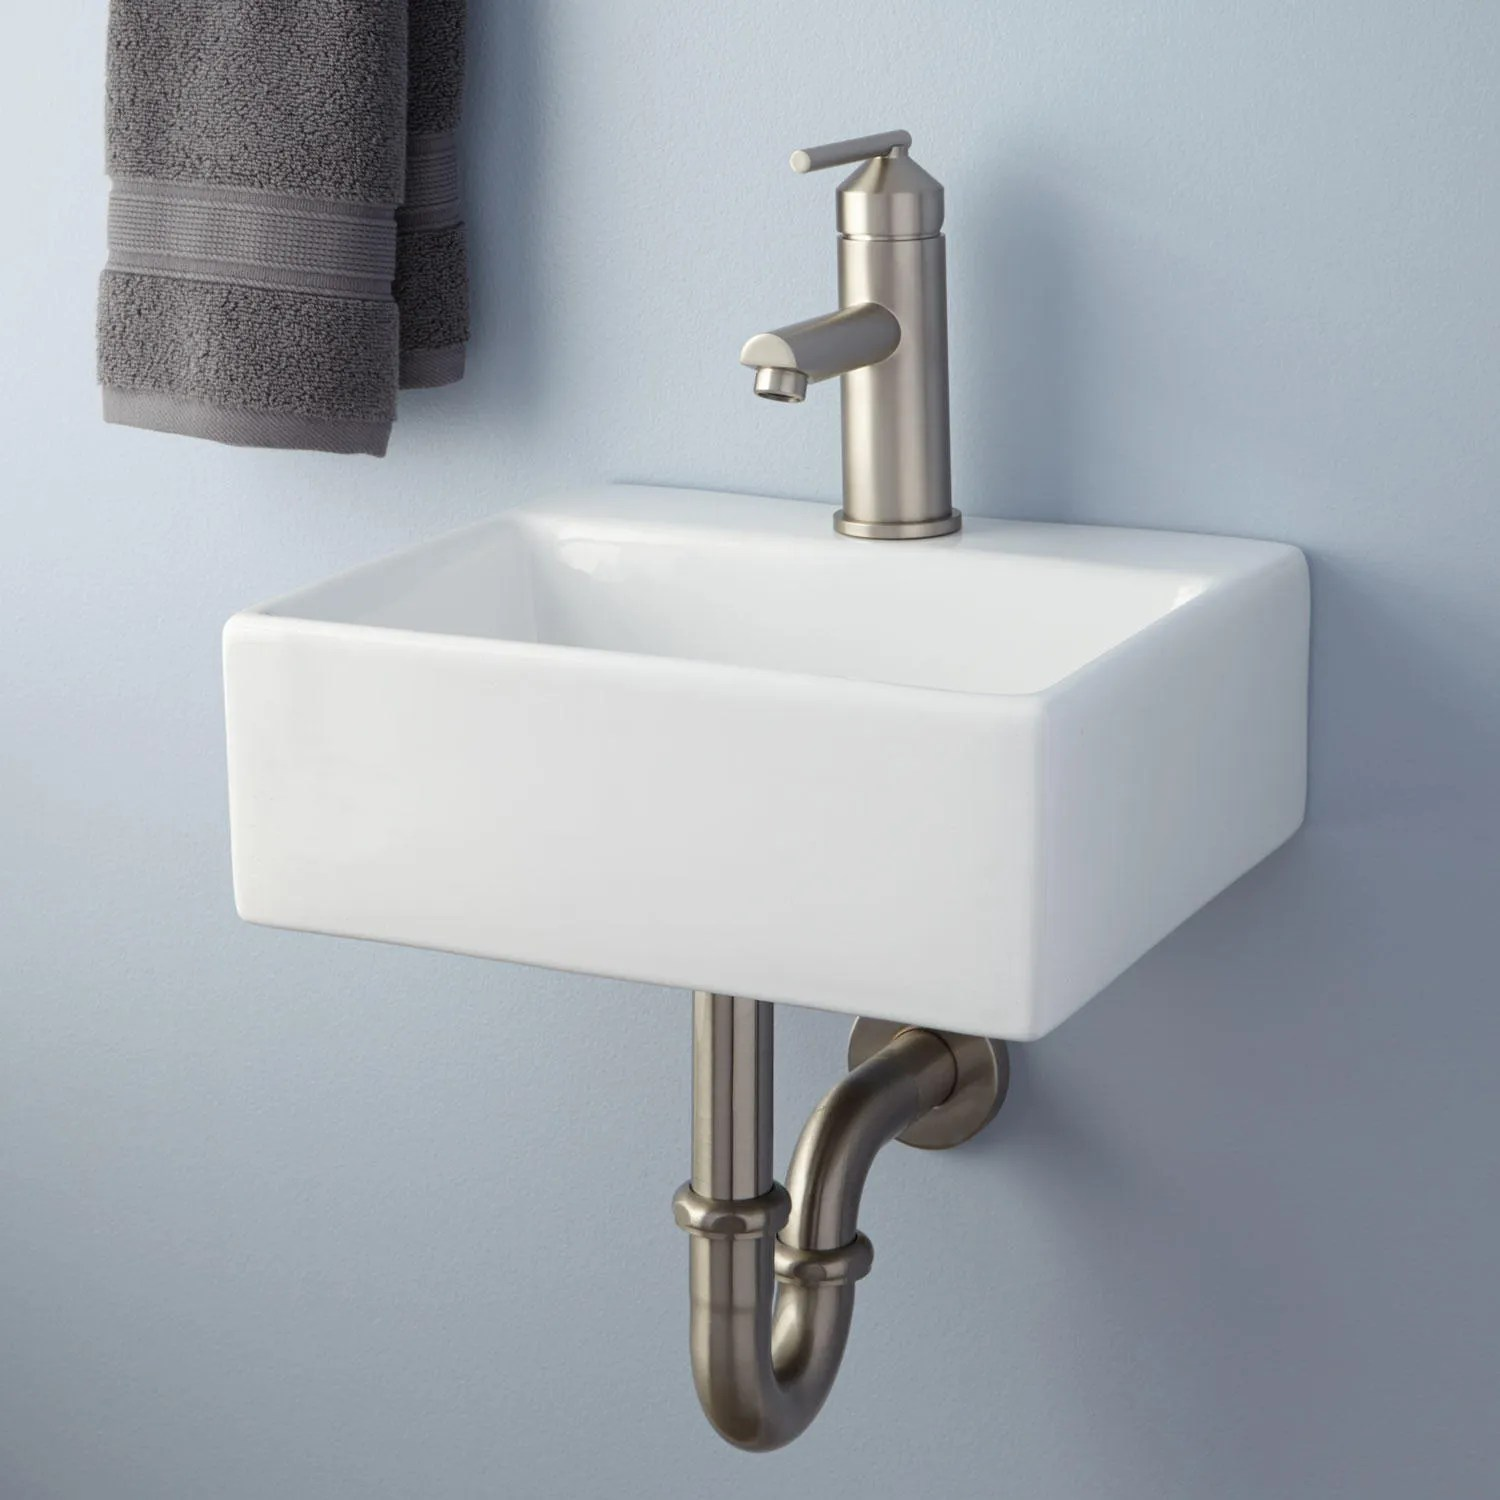 Cassin DoubleBowl WallMount Bathroom Sink  Bathroom